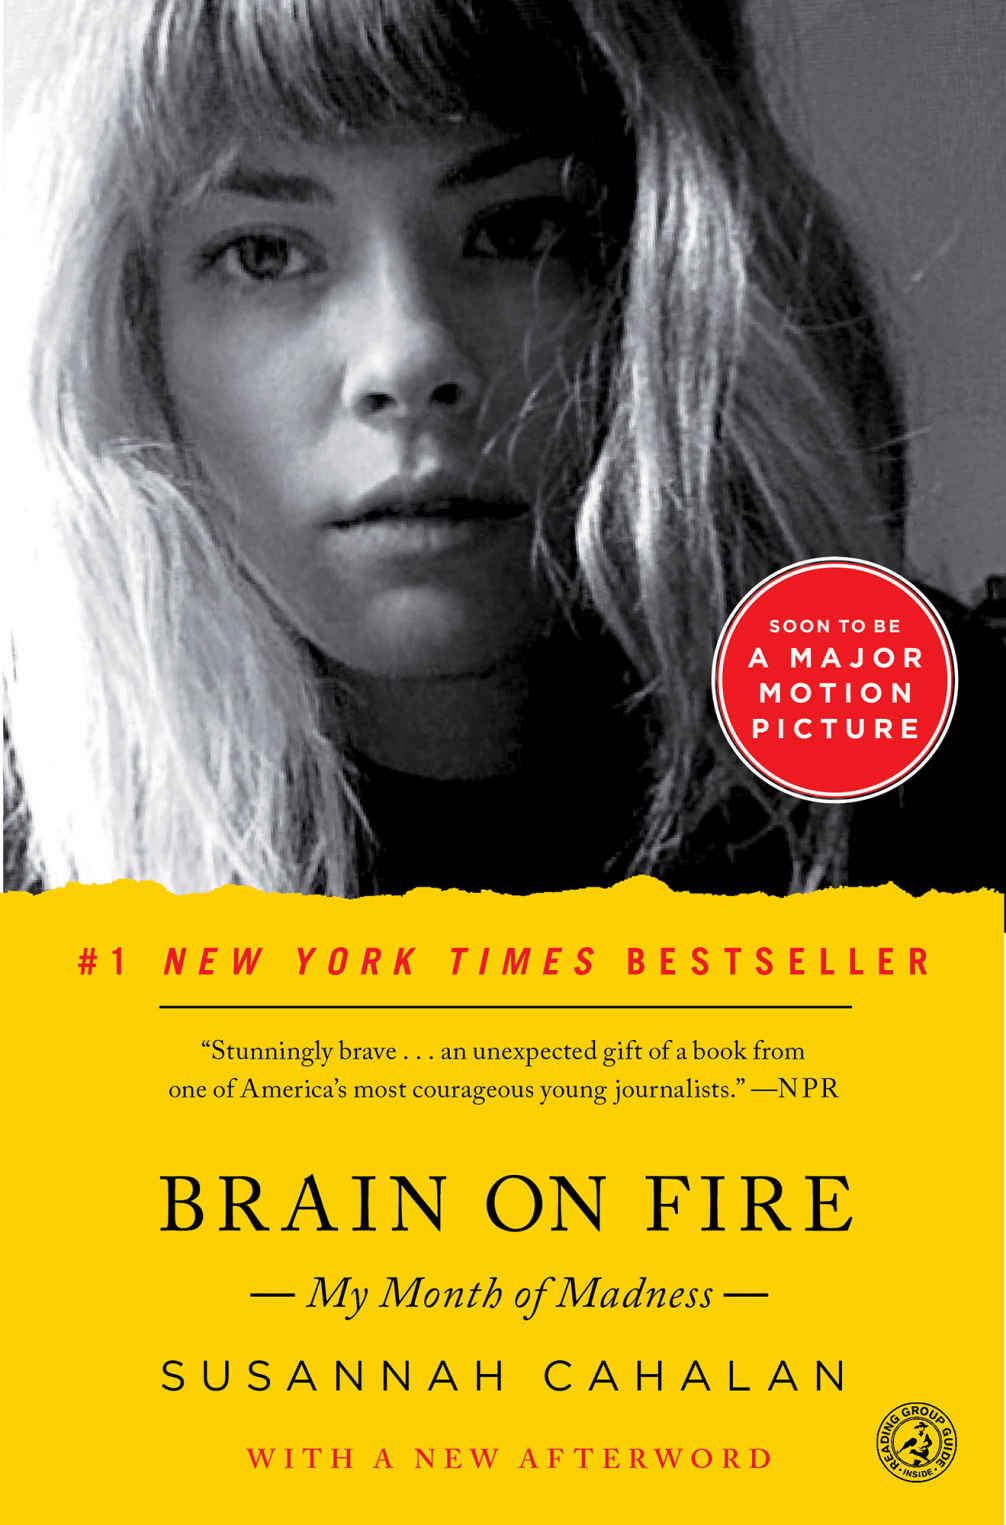 Brain on Fire - Susannah Cahalan [kindle] [mobi]